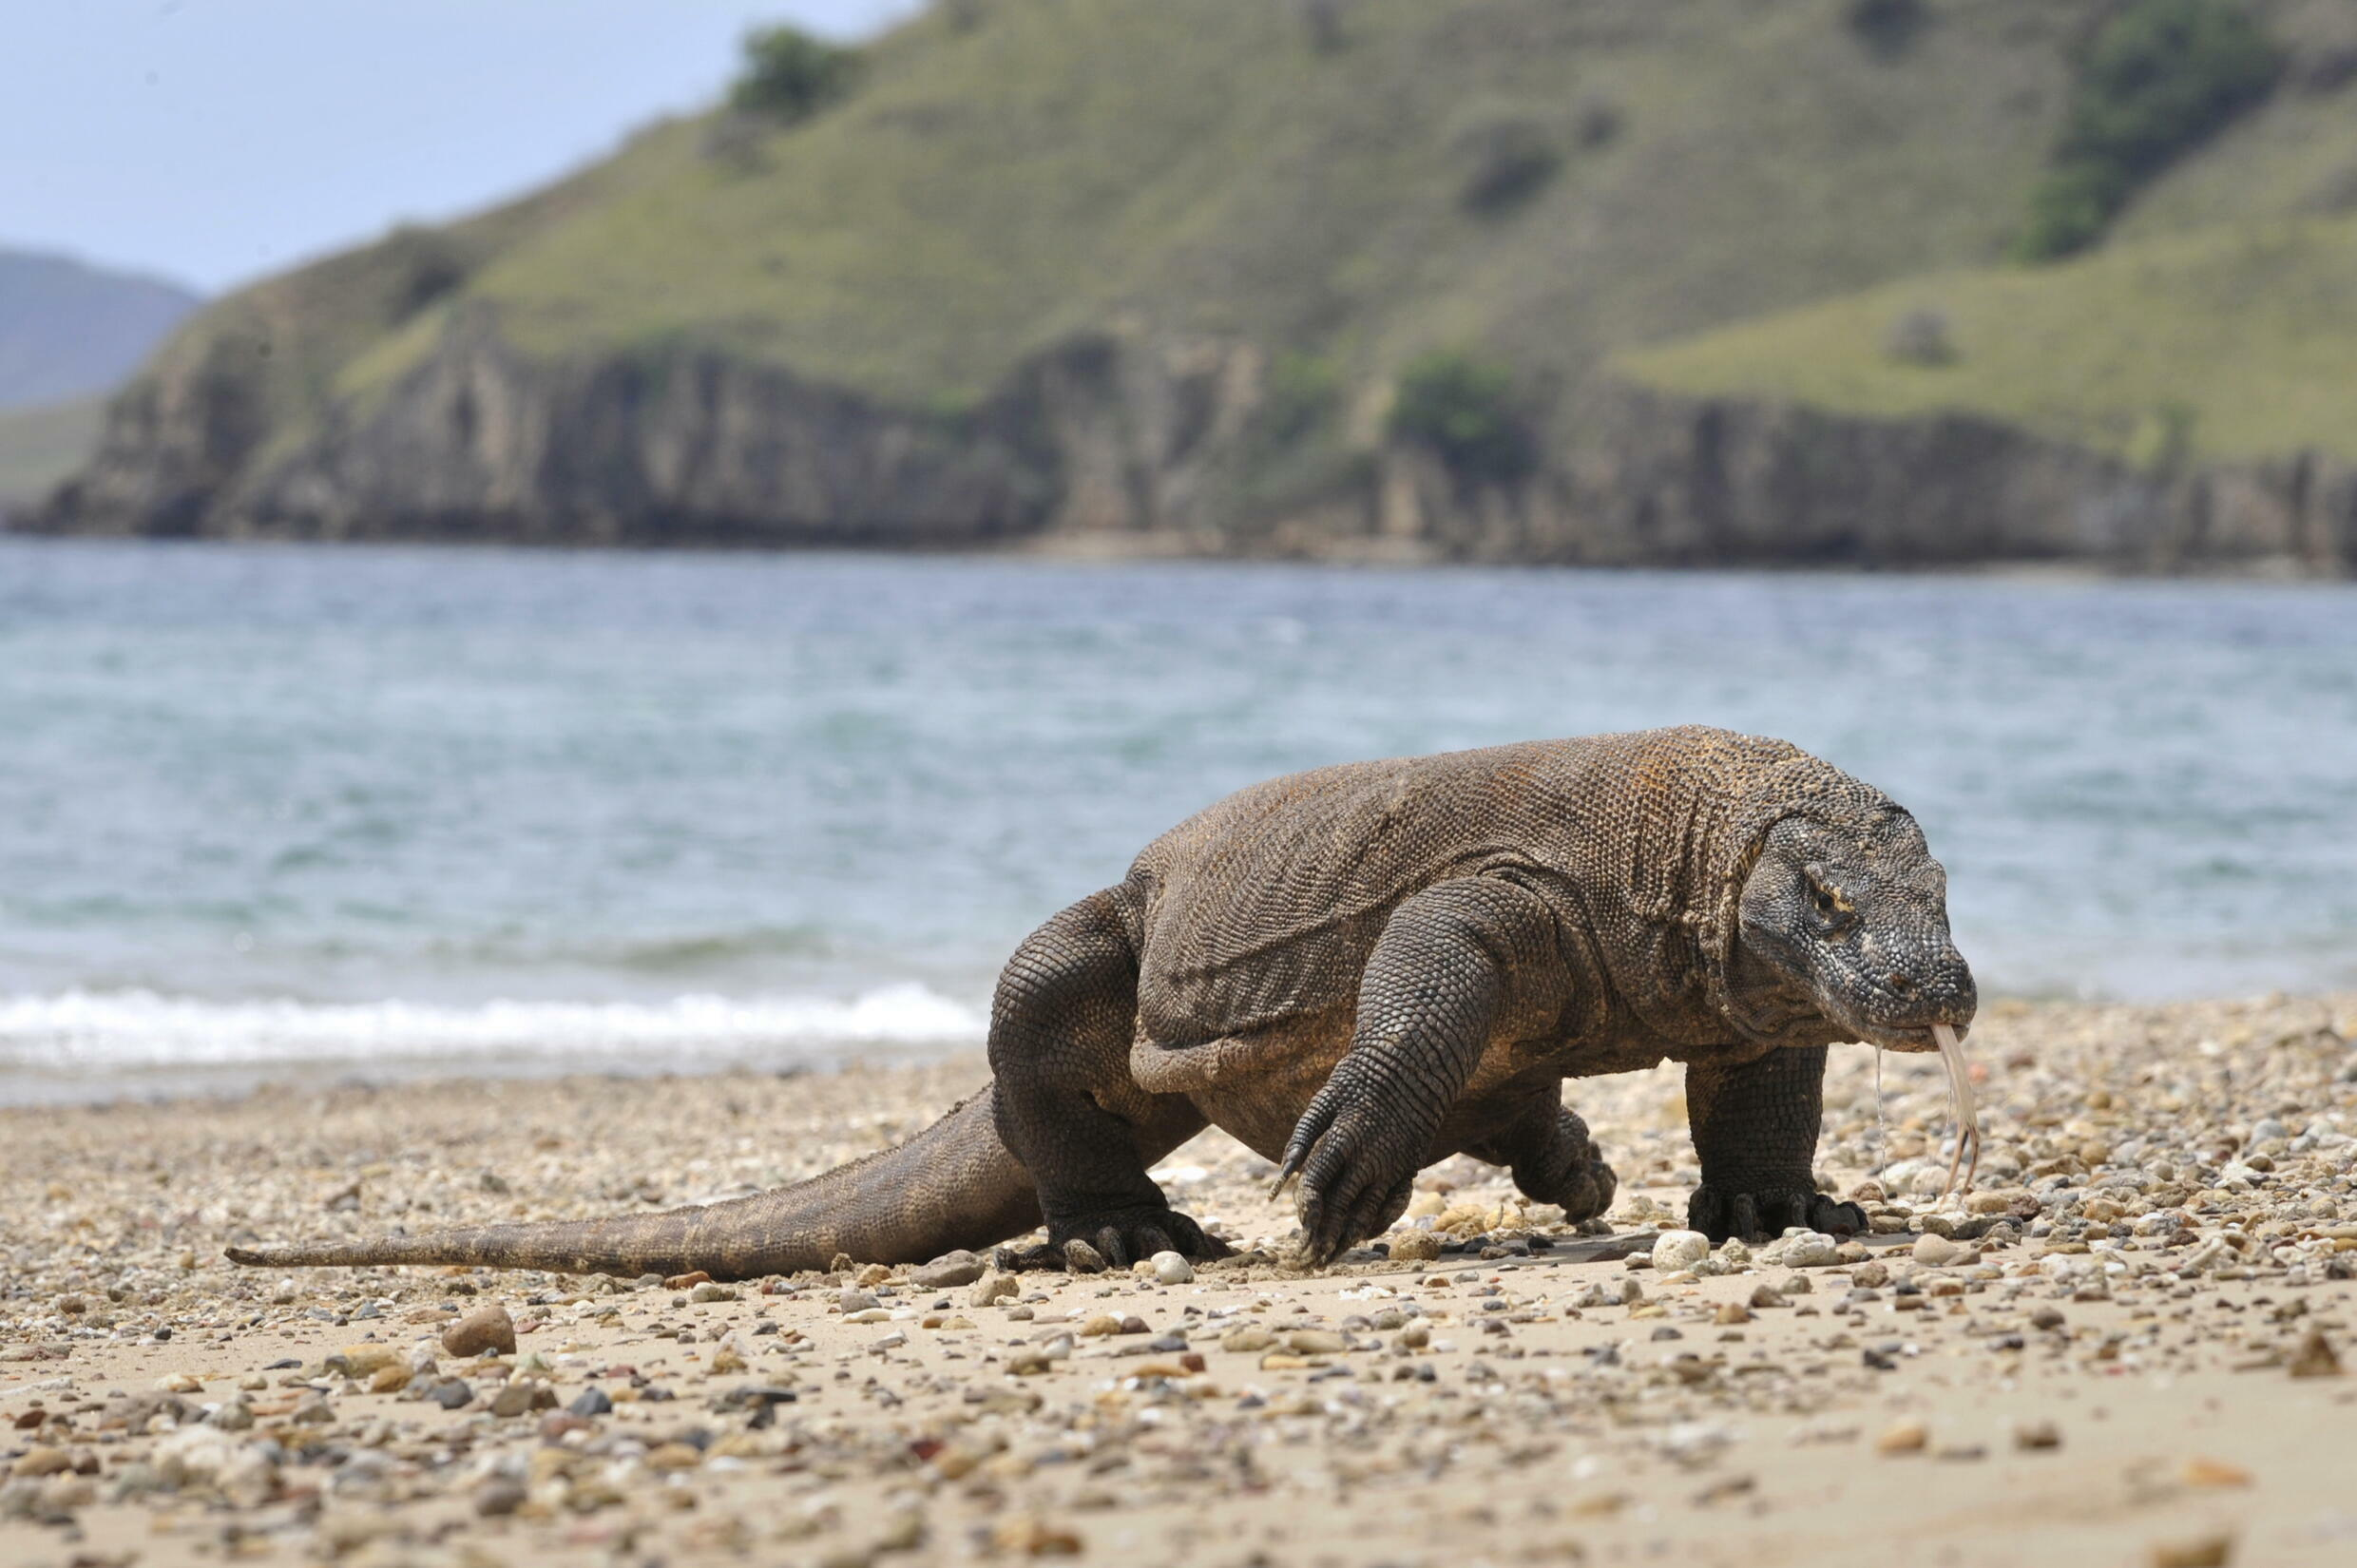 At least 30 percent of the Komodo dragon's habitat is projected to be lost in the next 45 years